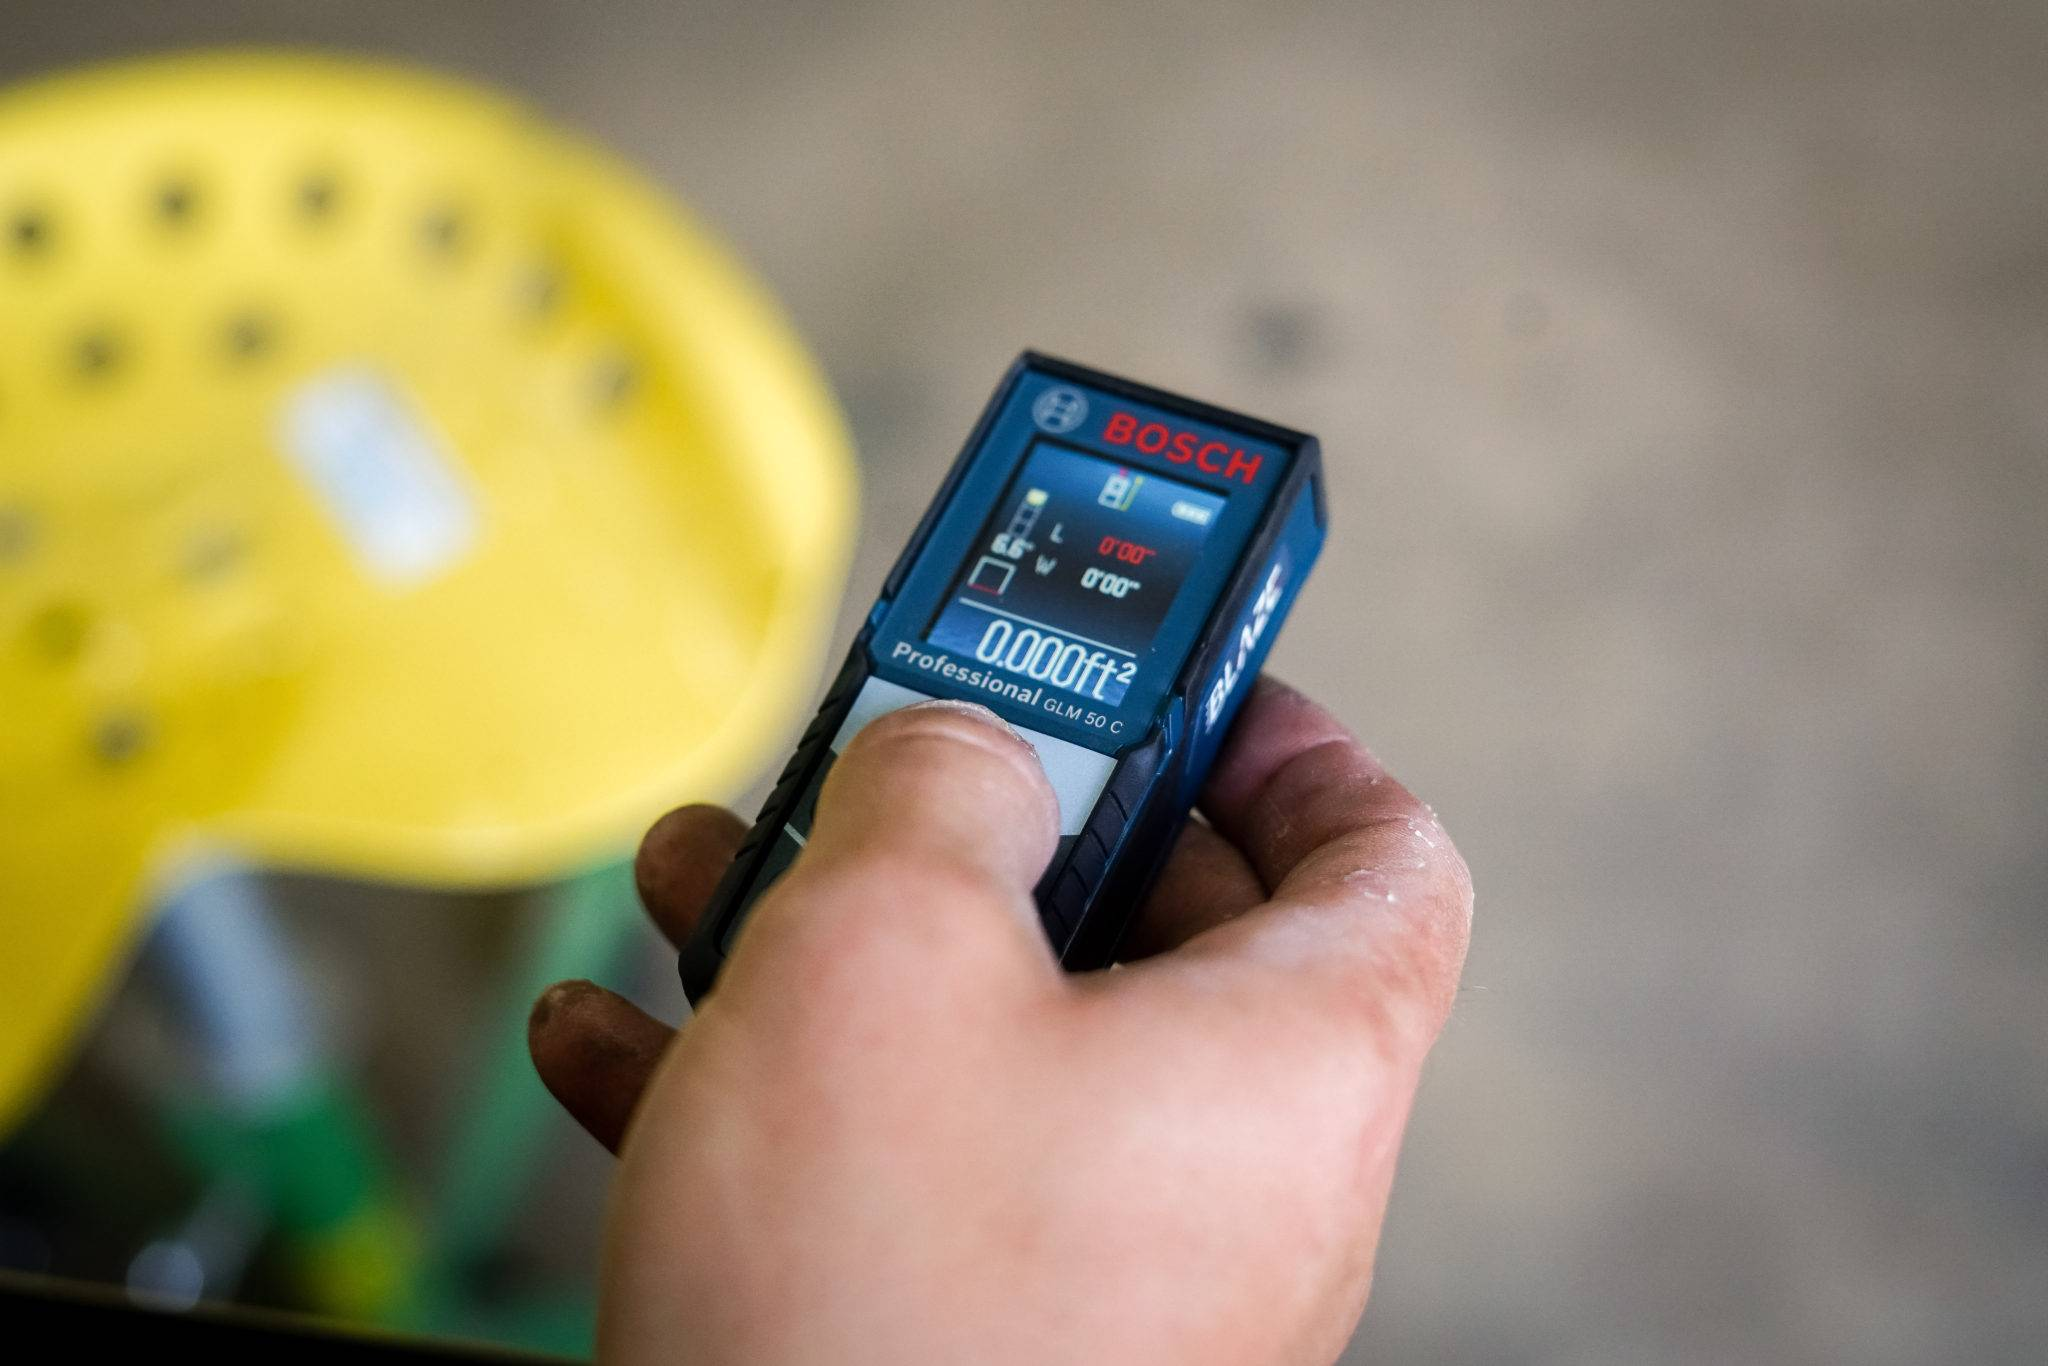 bosch laser measure bluetooth